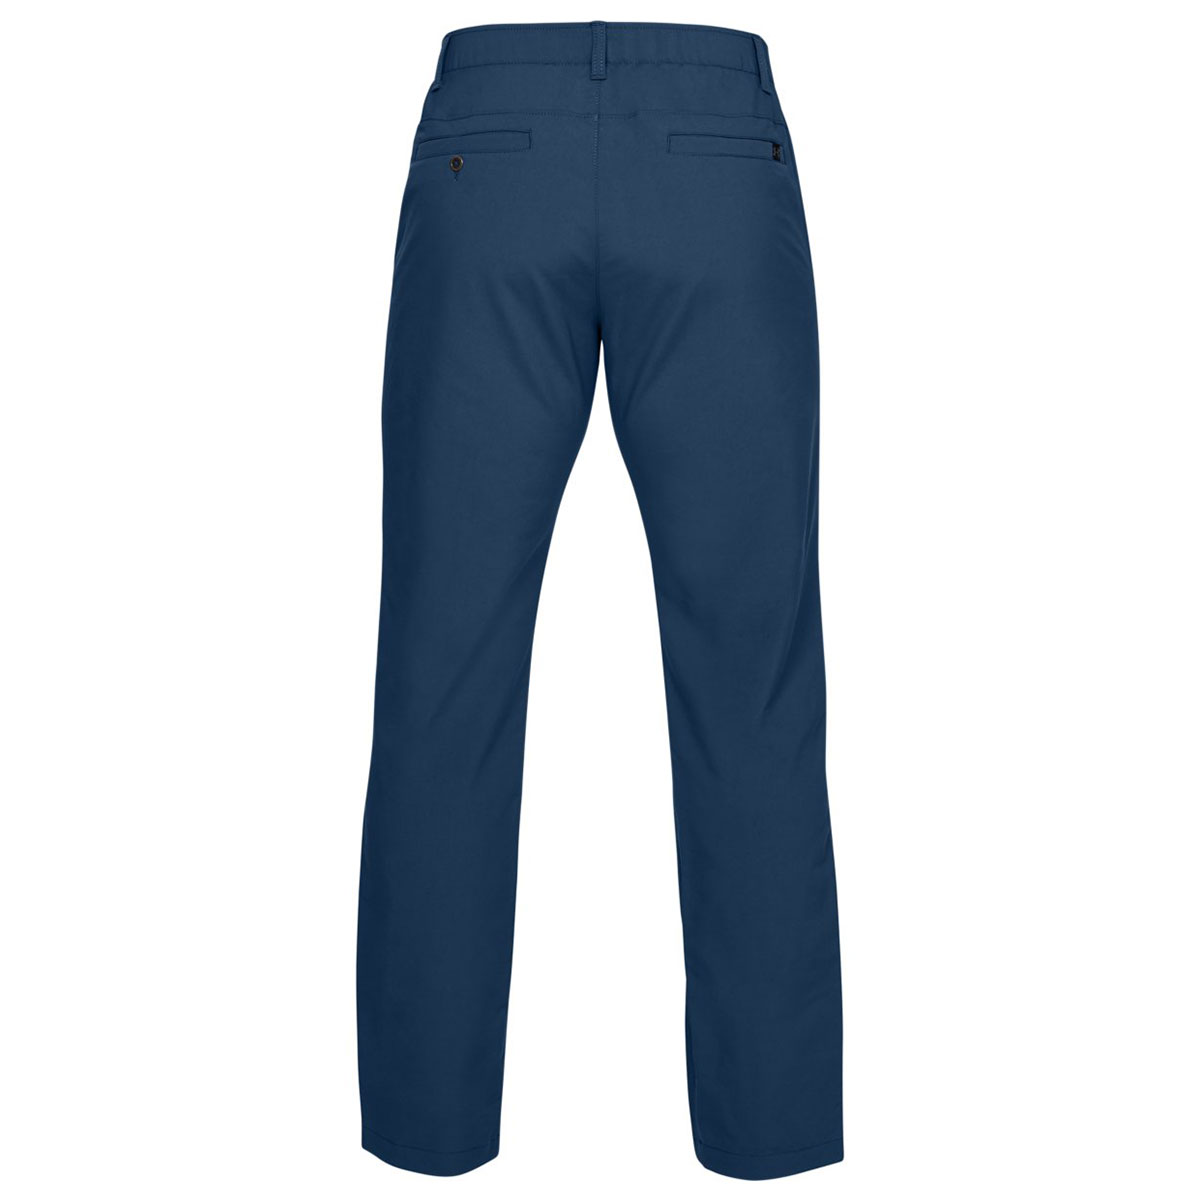 Under-Armour-Mens-2019-EU-Performance-Taper-Soft-Stretch-Golf-Trousers thumbnail 11